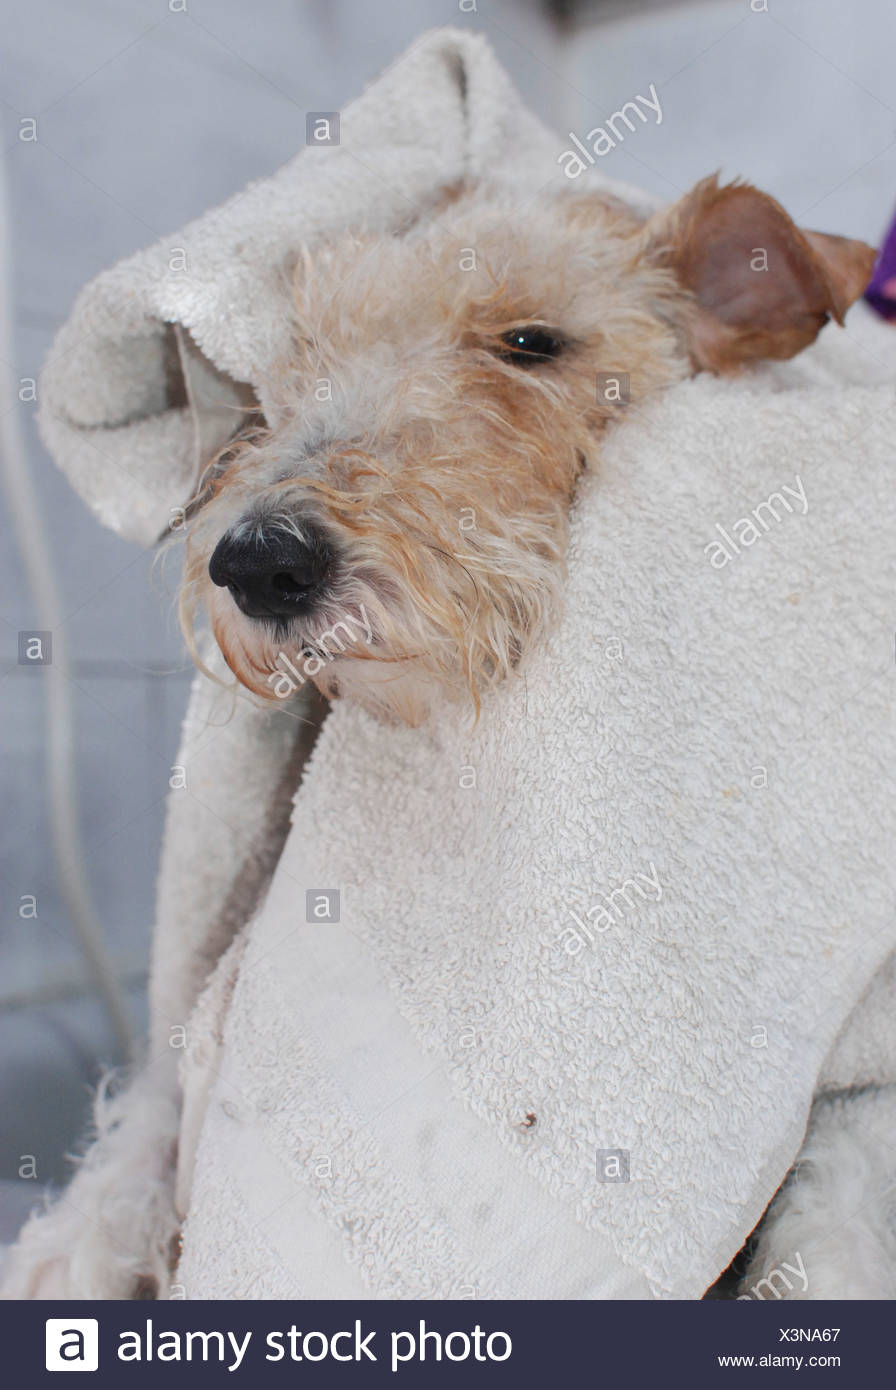 Fox Terrier in the bath Stock Photo: 277678863 - Alamy